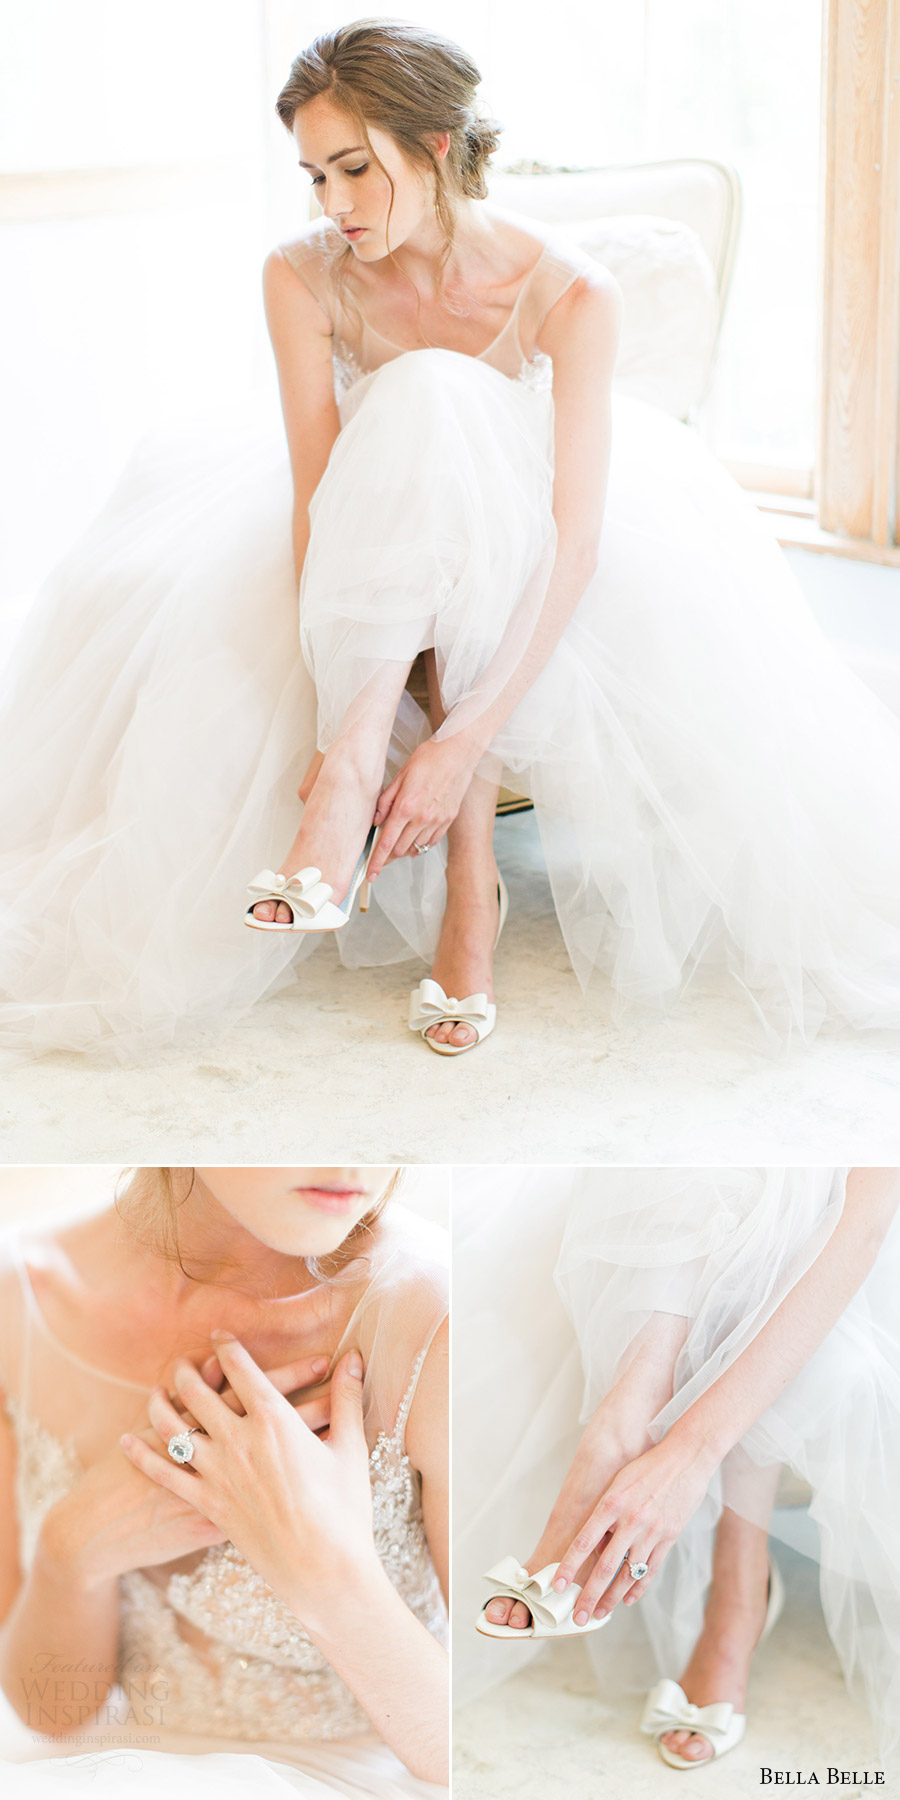 bella belle bridal shoes 2016 julia d orsay peep toe 3.5 inch heels wedding shoes bow rachel may photography